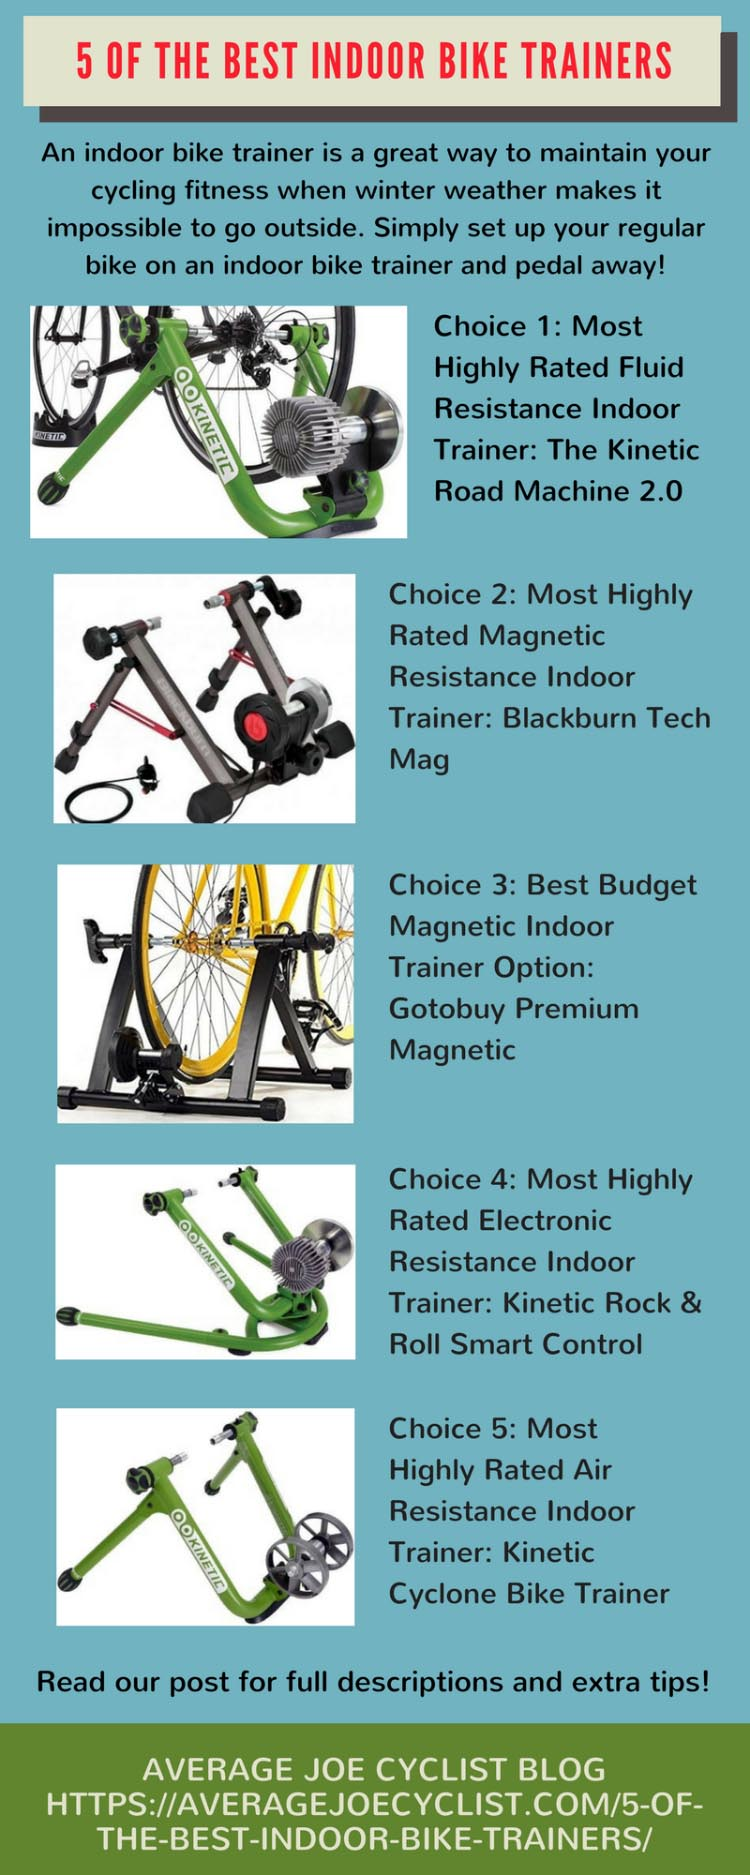 5 of the Best Indoor Bike Trainers, 2019: Turbo, Fluid